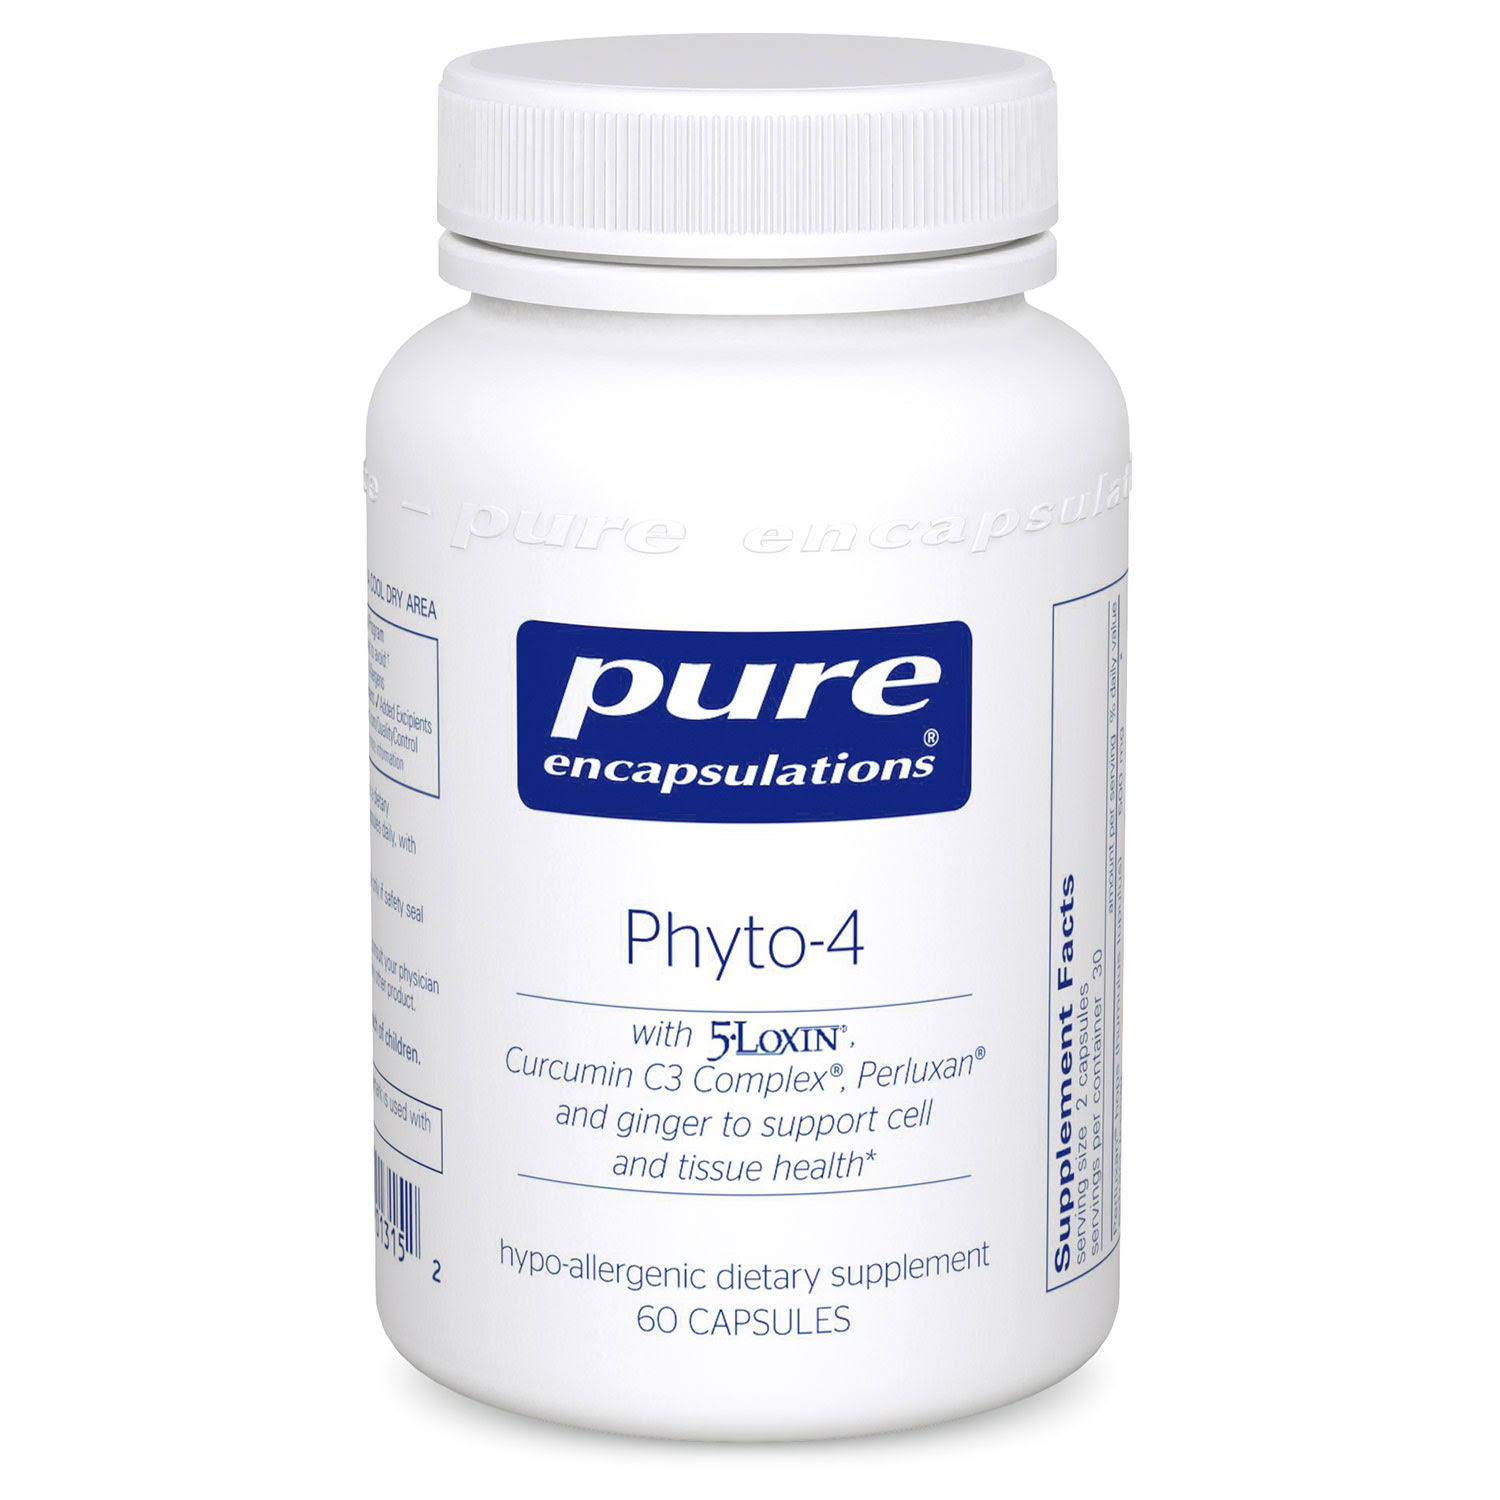 Pure Encapsulations - Phyto-4 - 60 Capsules